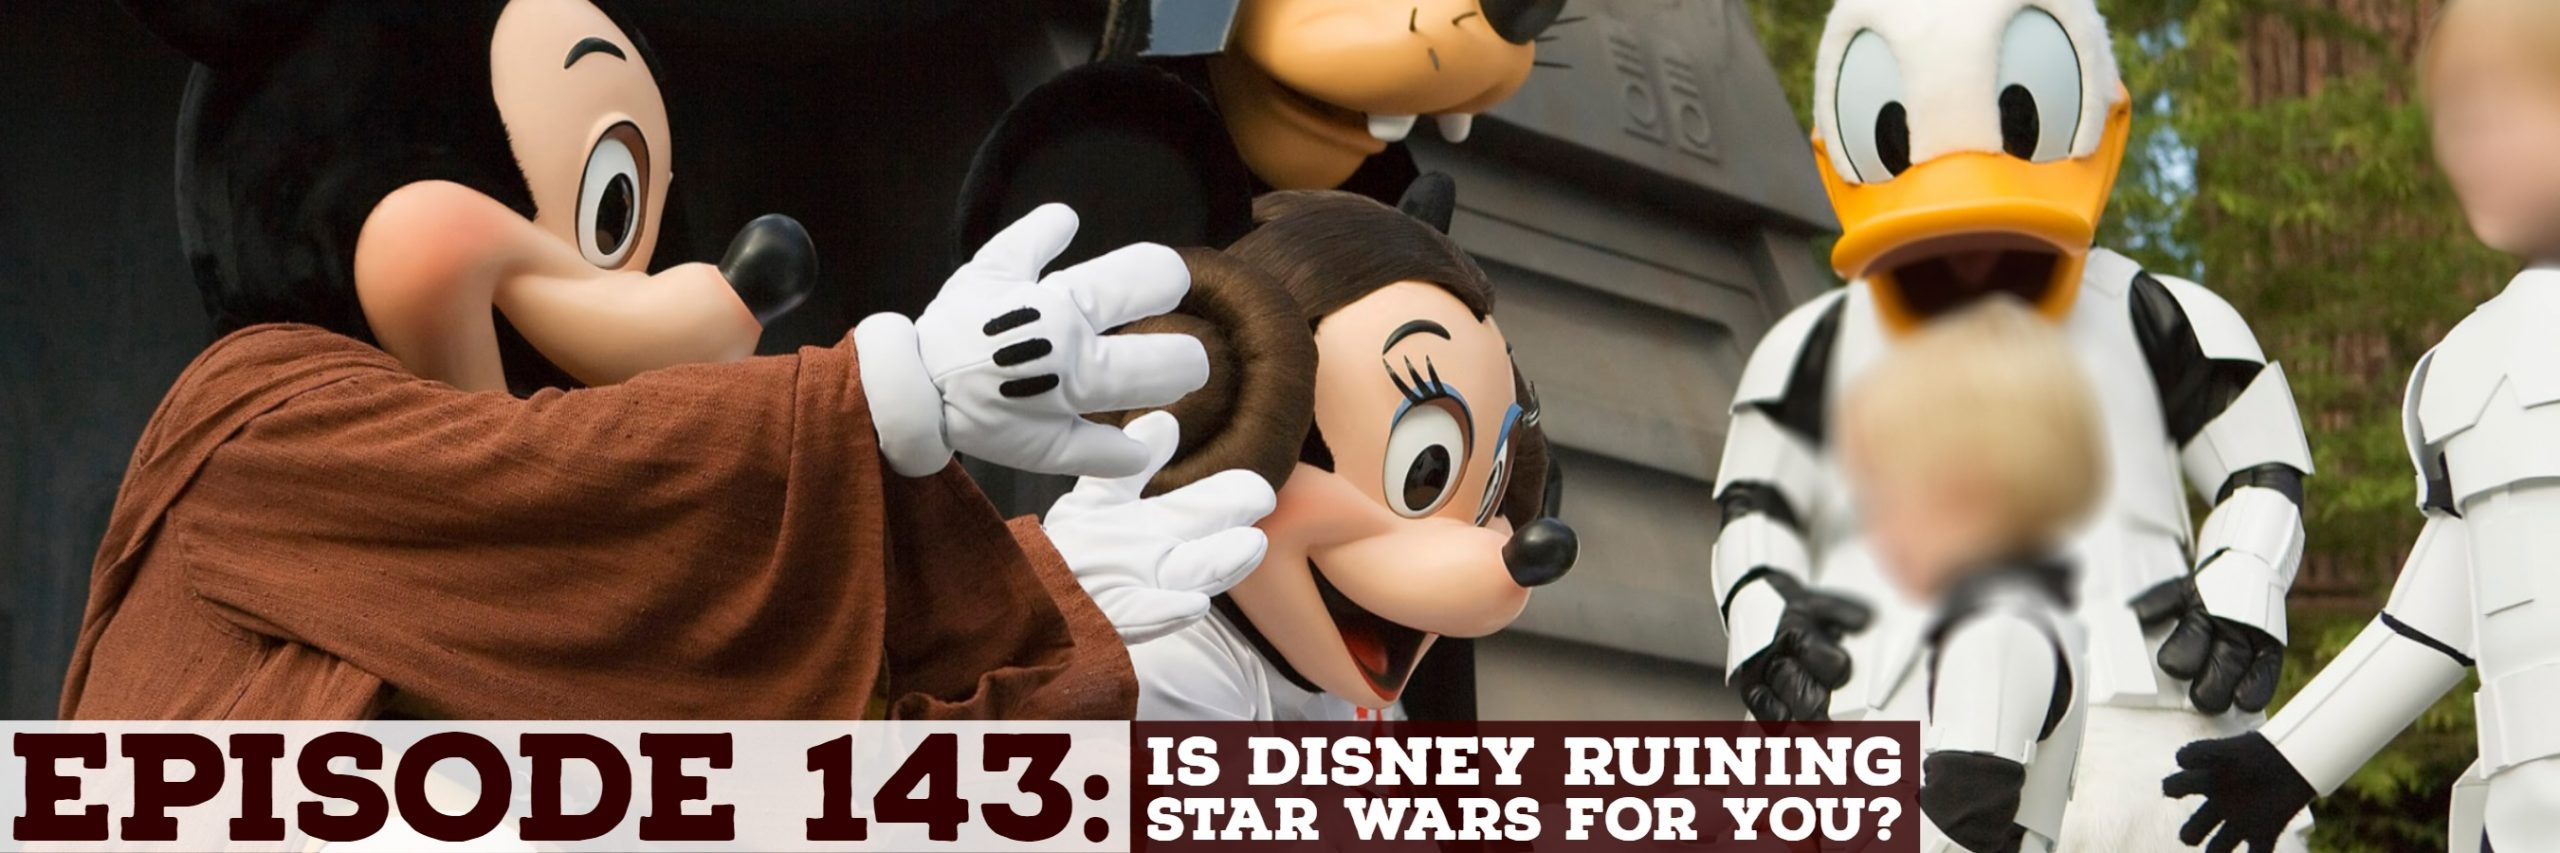 Episode 143: Is Disney Ruining Star Wars for You?